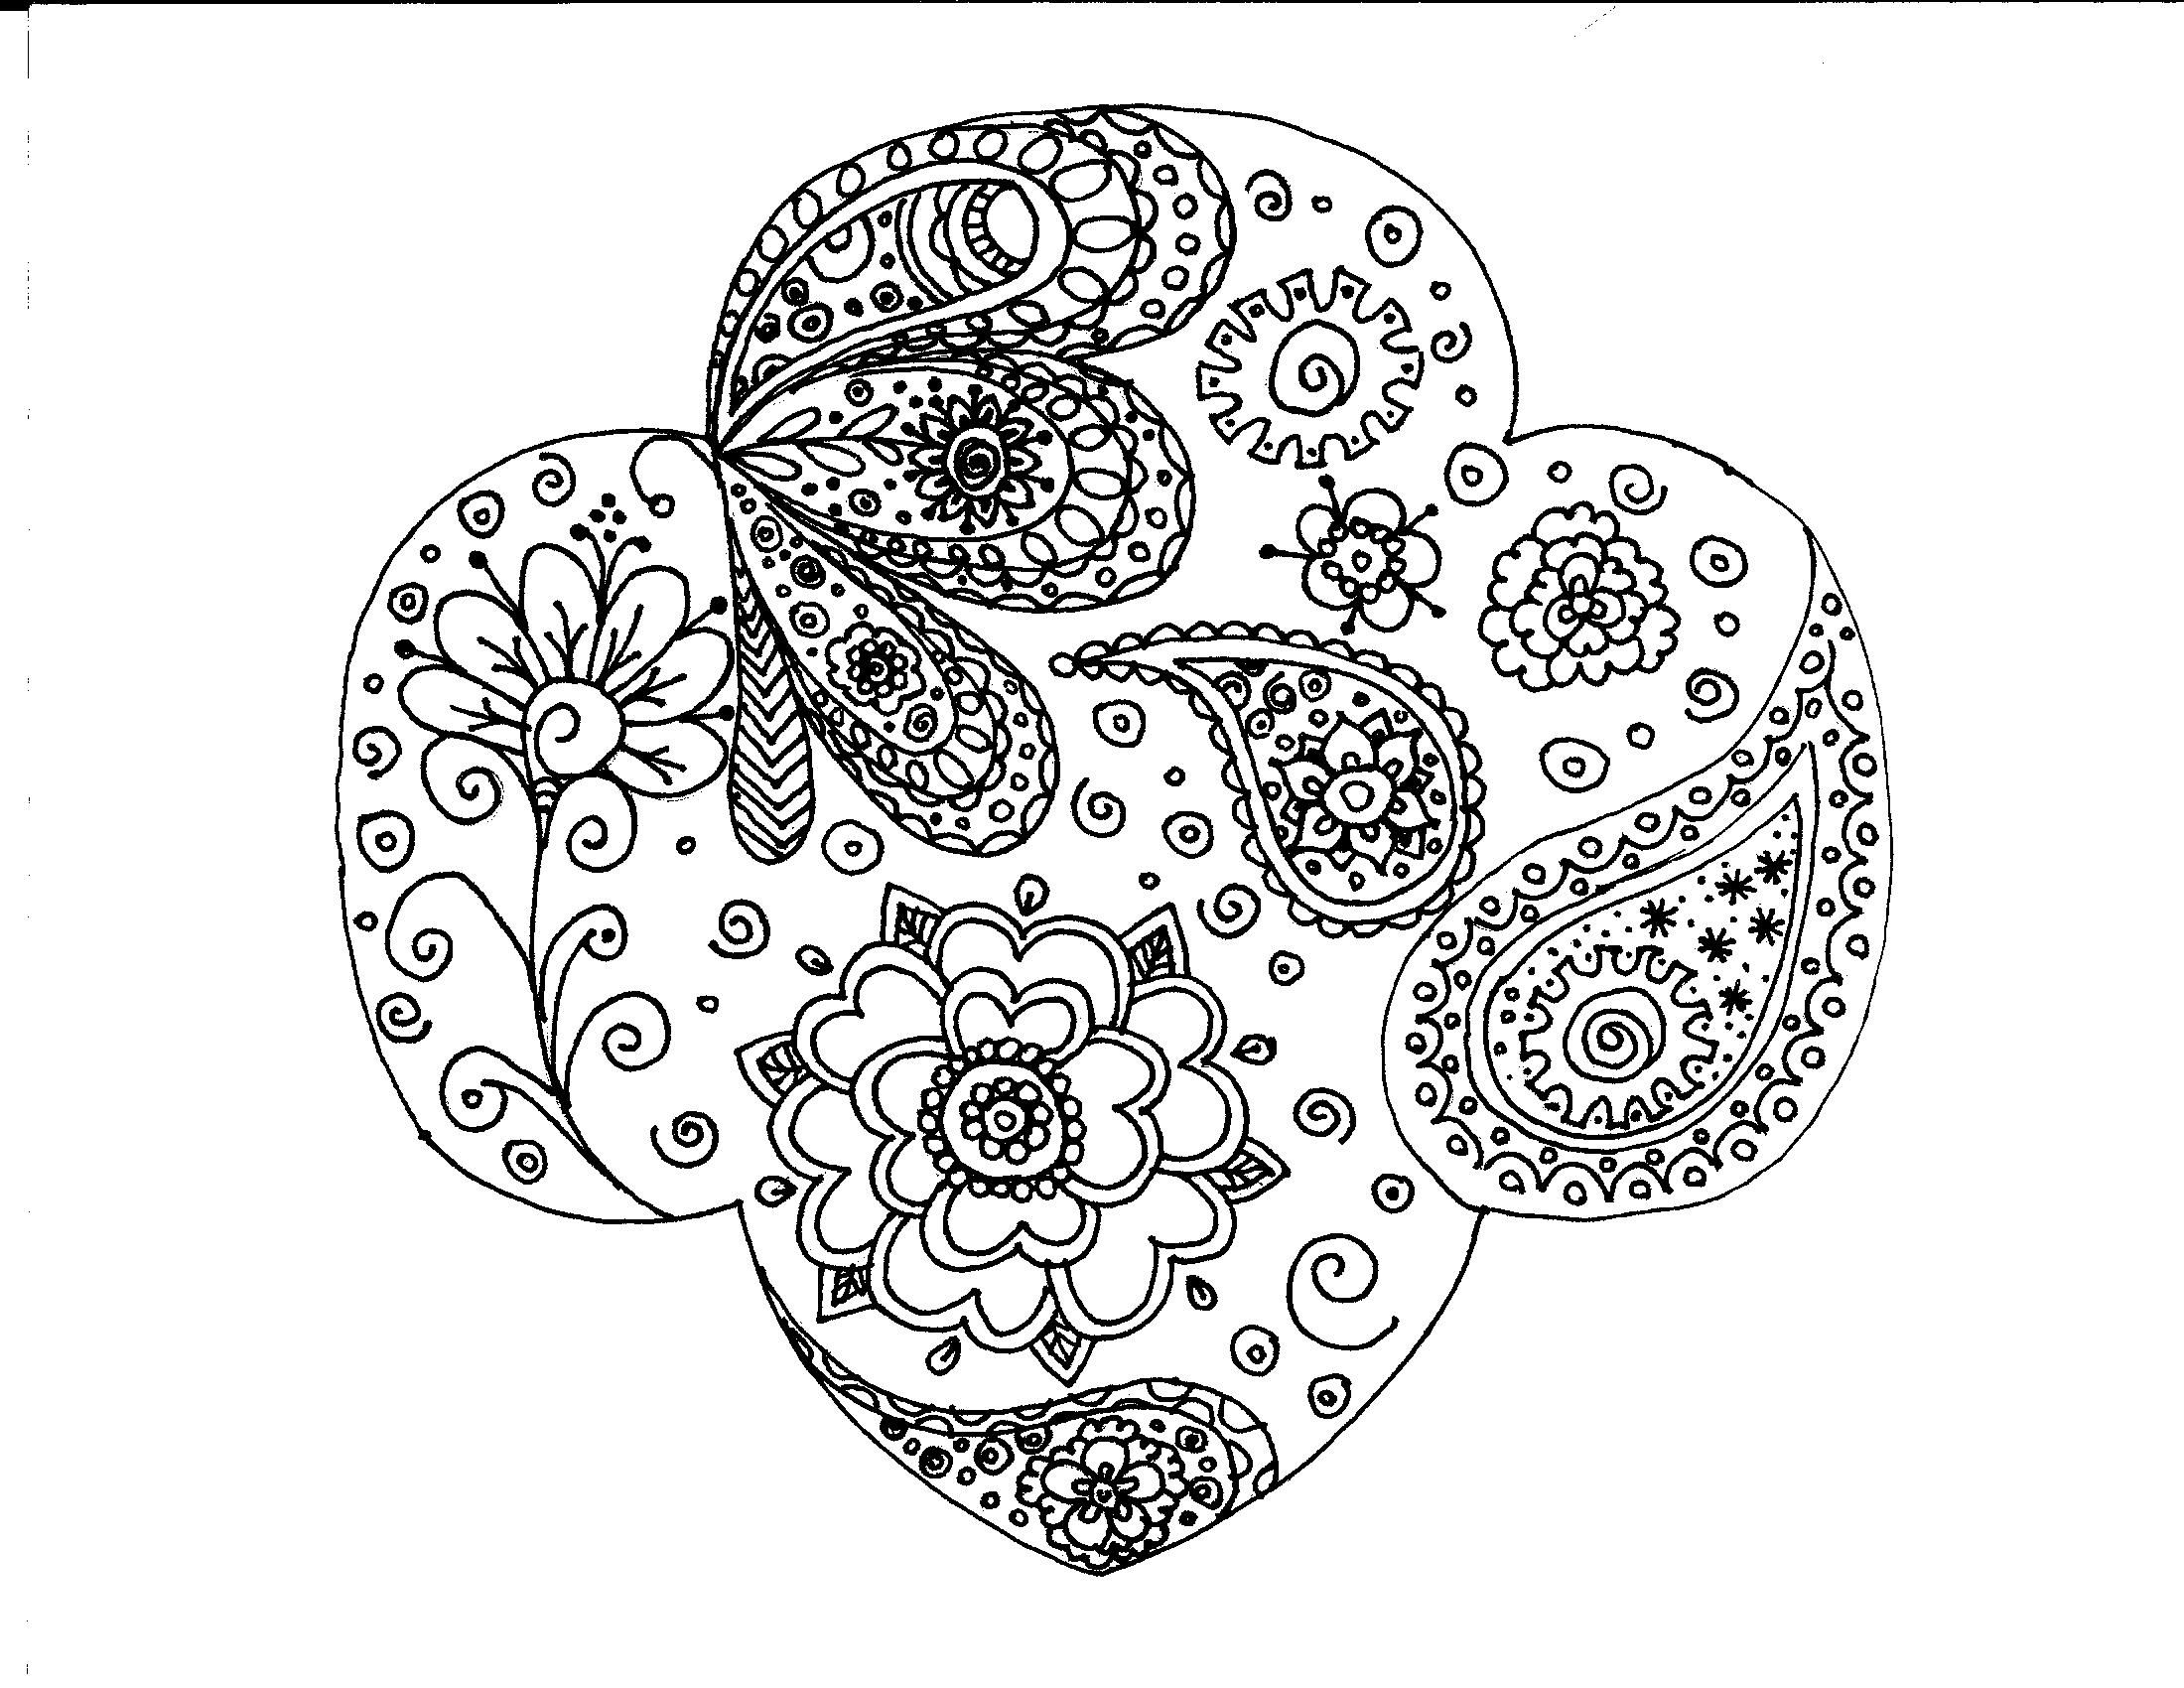 Brownie Girl Scouts Coloring Pages In Daisy Girl Scout Coloring Pages: Girl Scout Trefoil Paisley Coloring Page